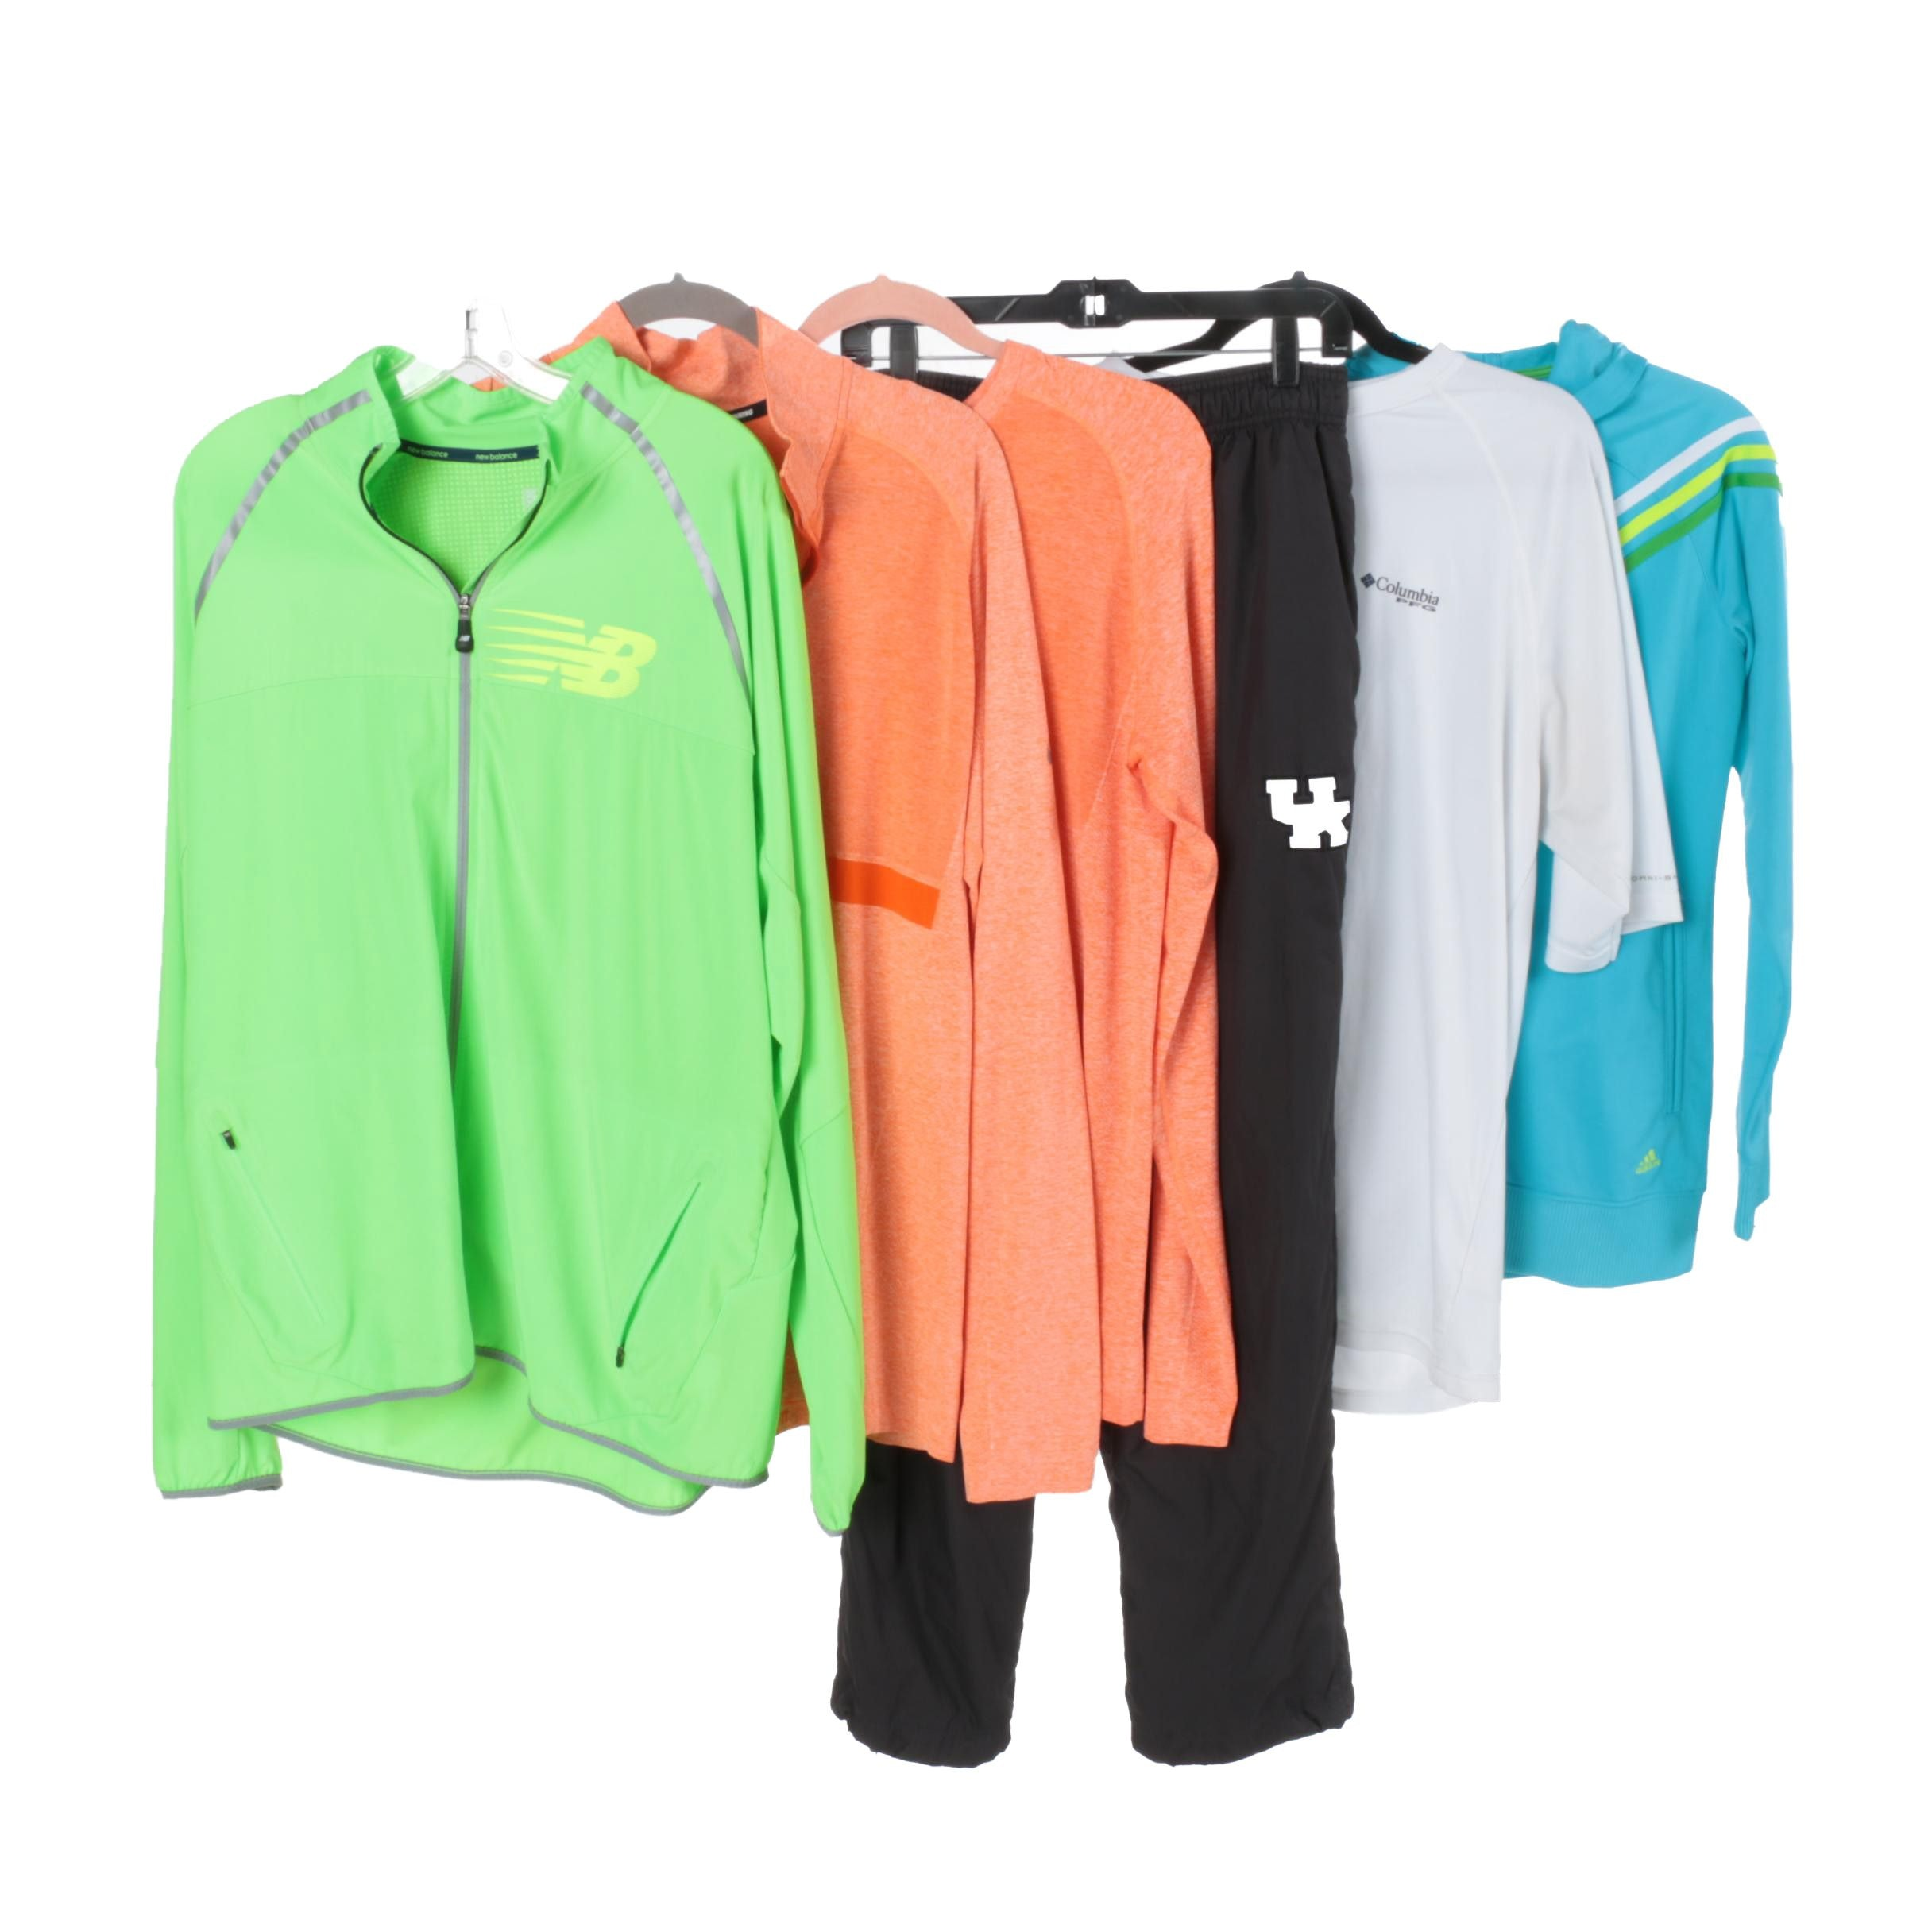 Activewear Including New Balance, Columbia, Nike and Adidas